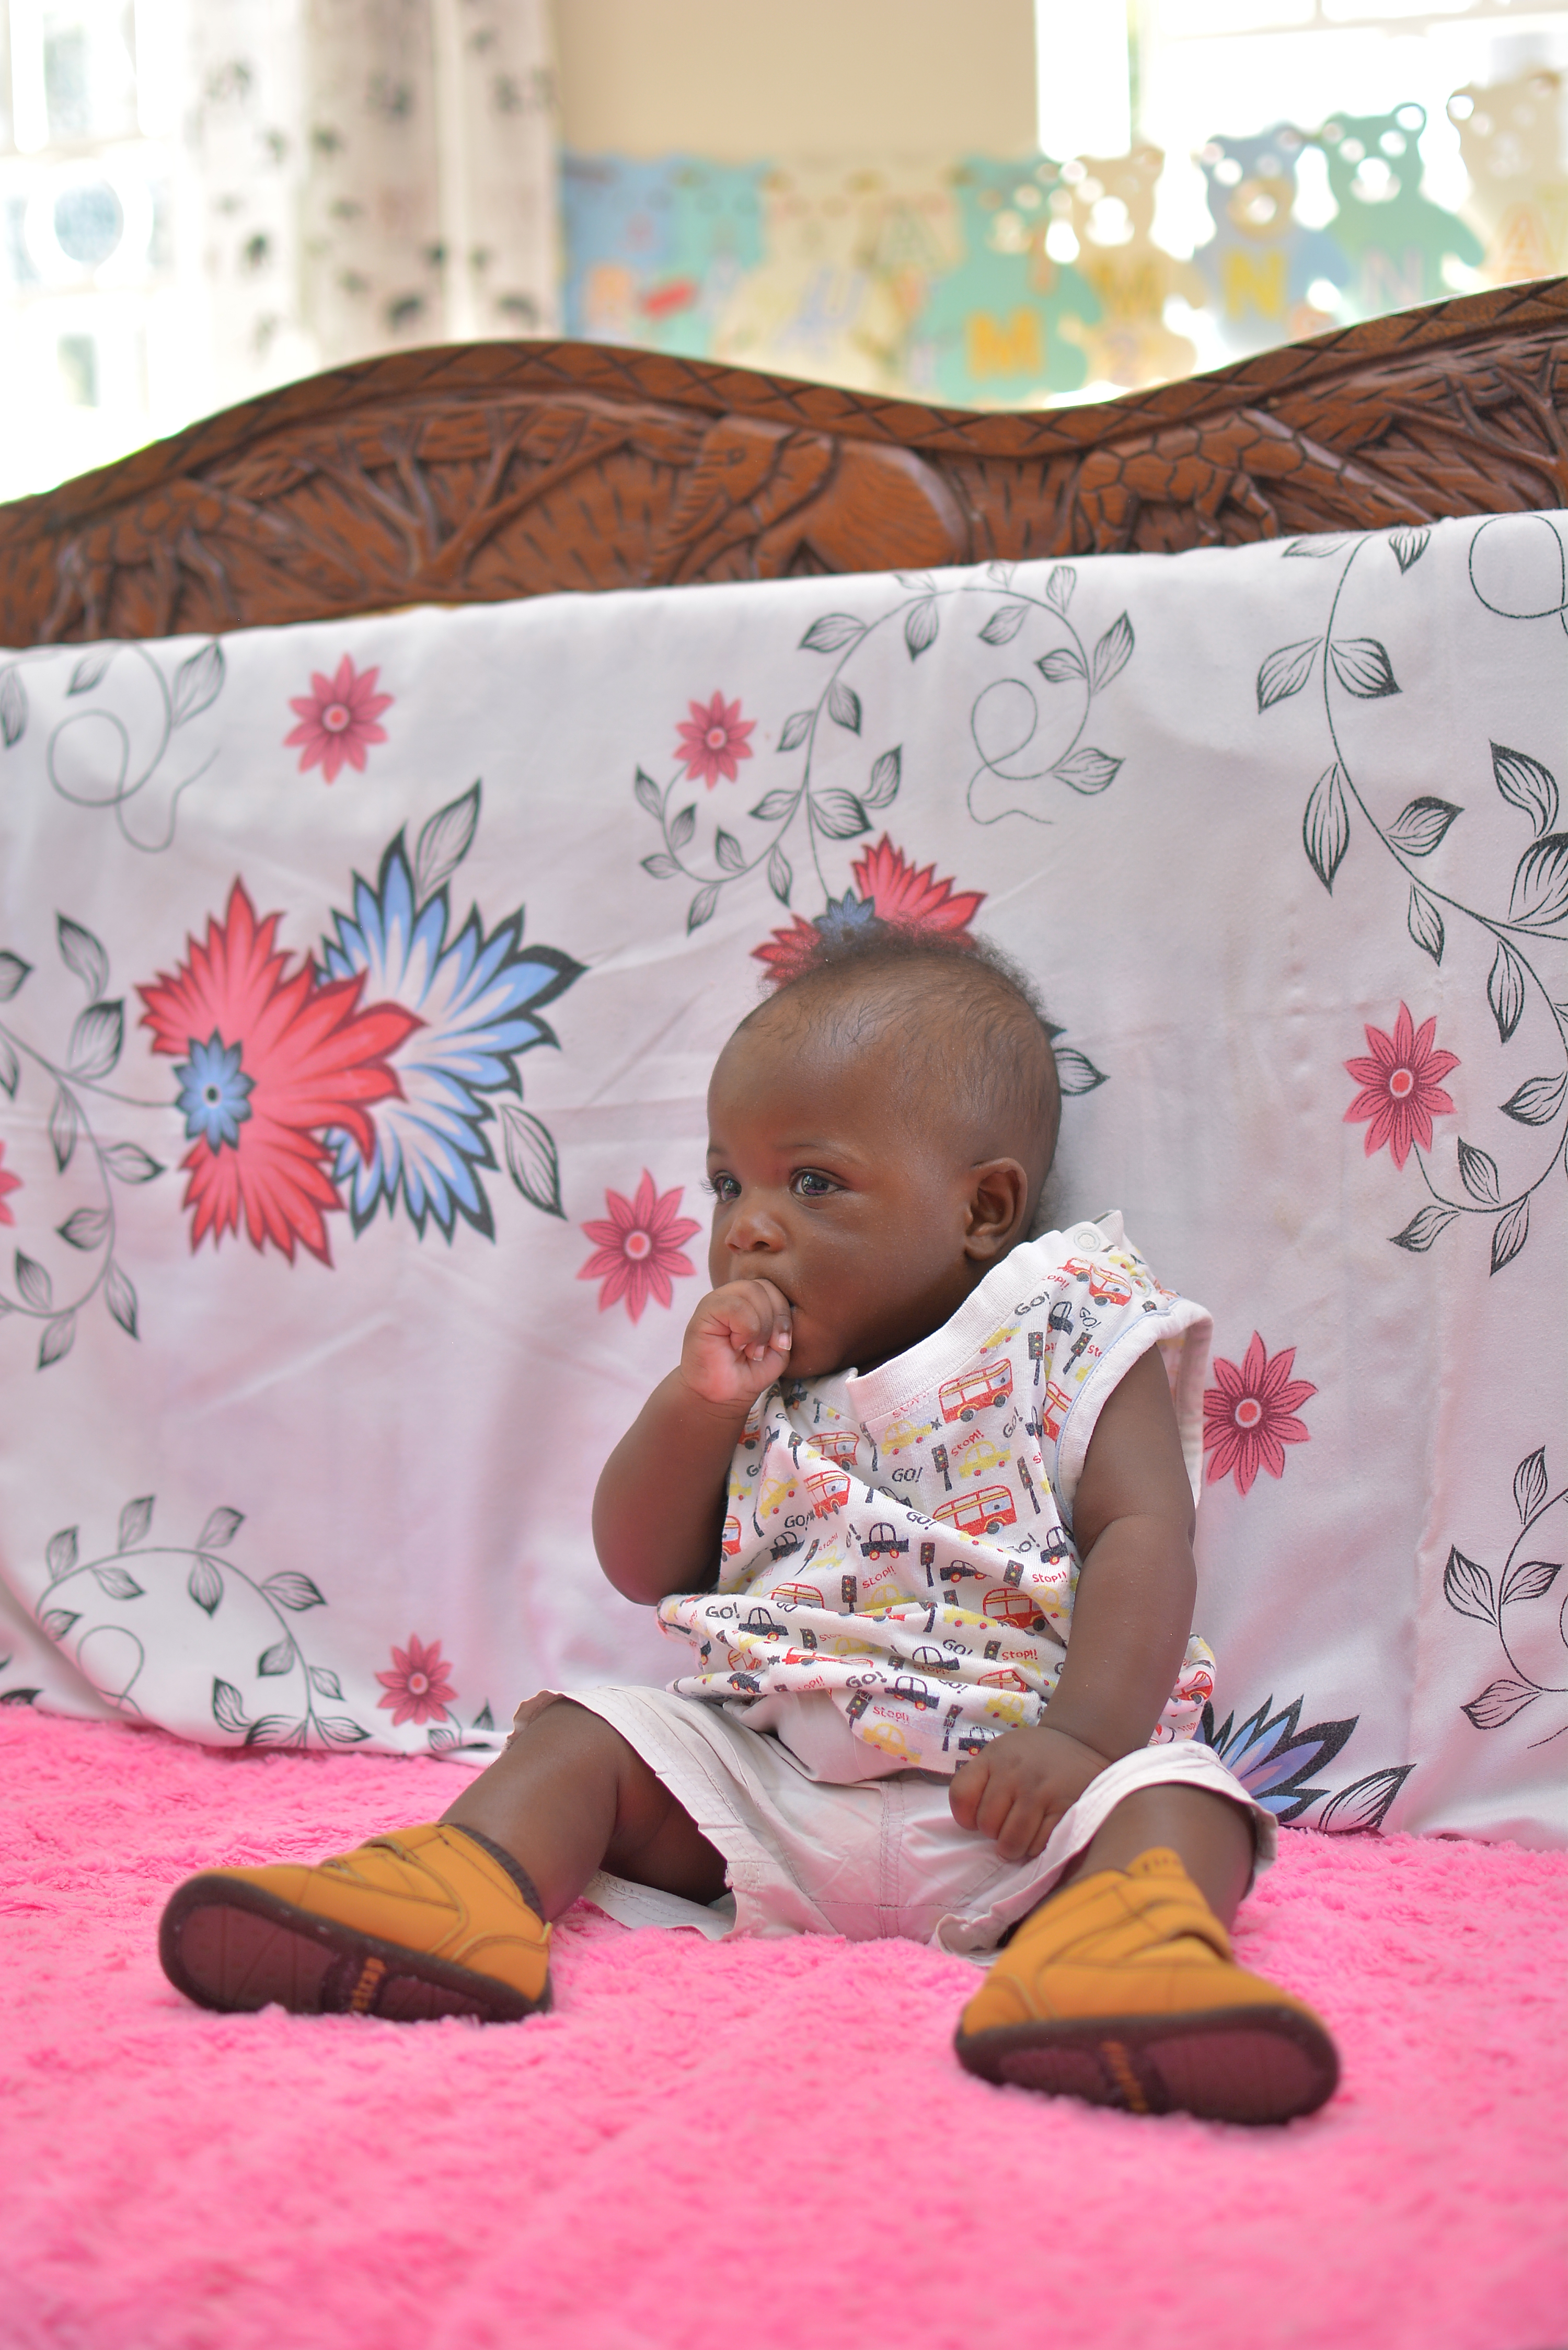 Young child sitting on bed